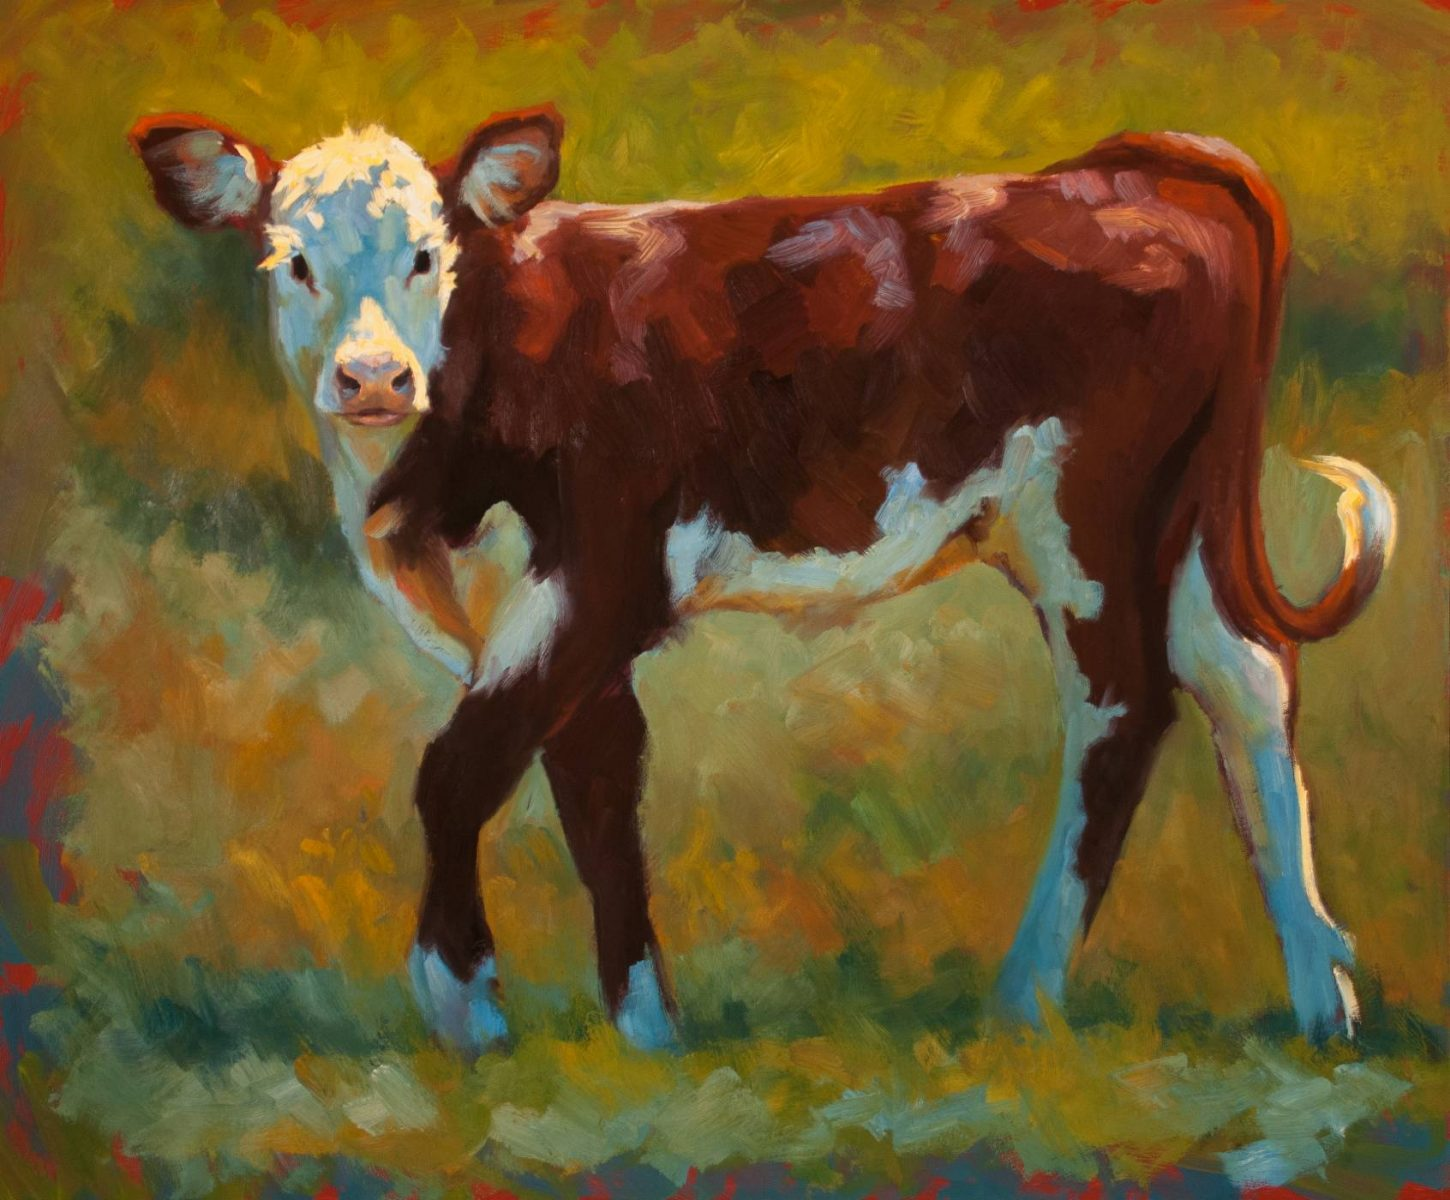 A Spring in Her Step by artist Cheri Christensen